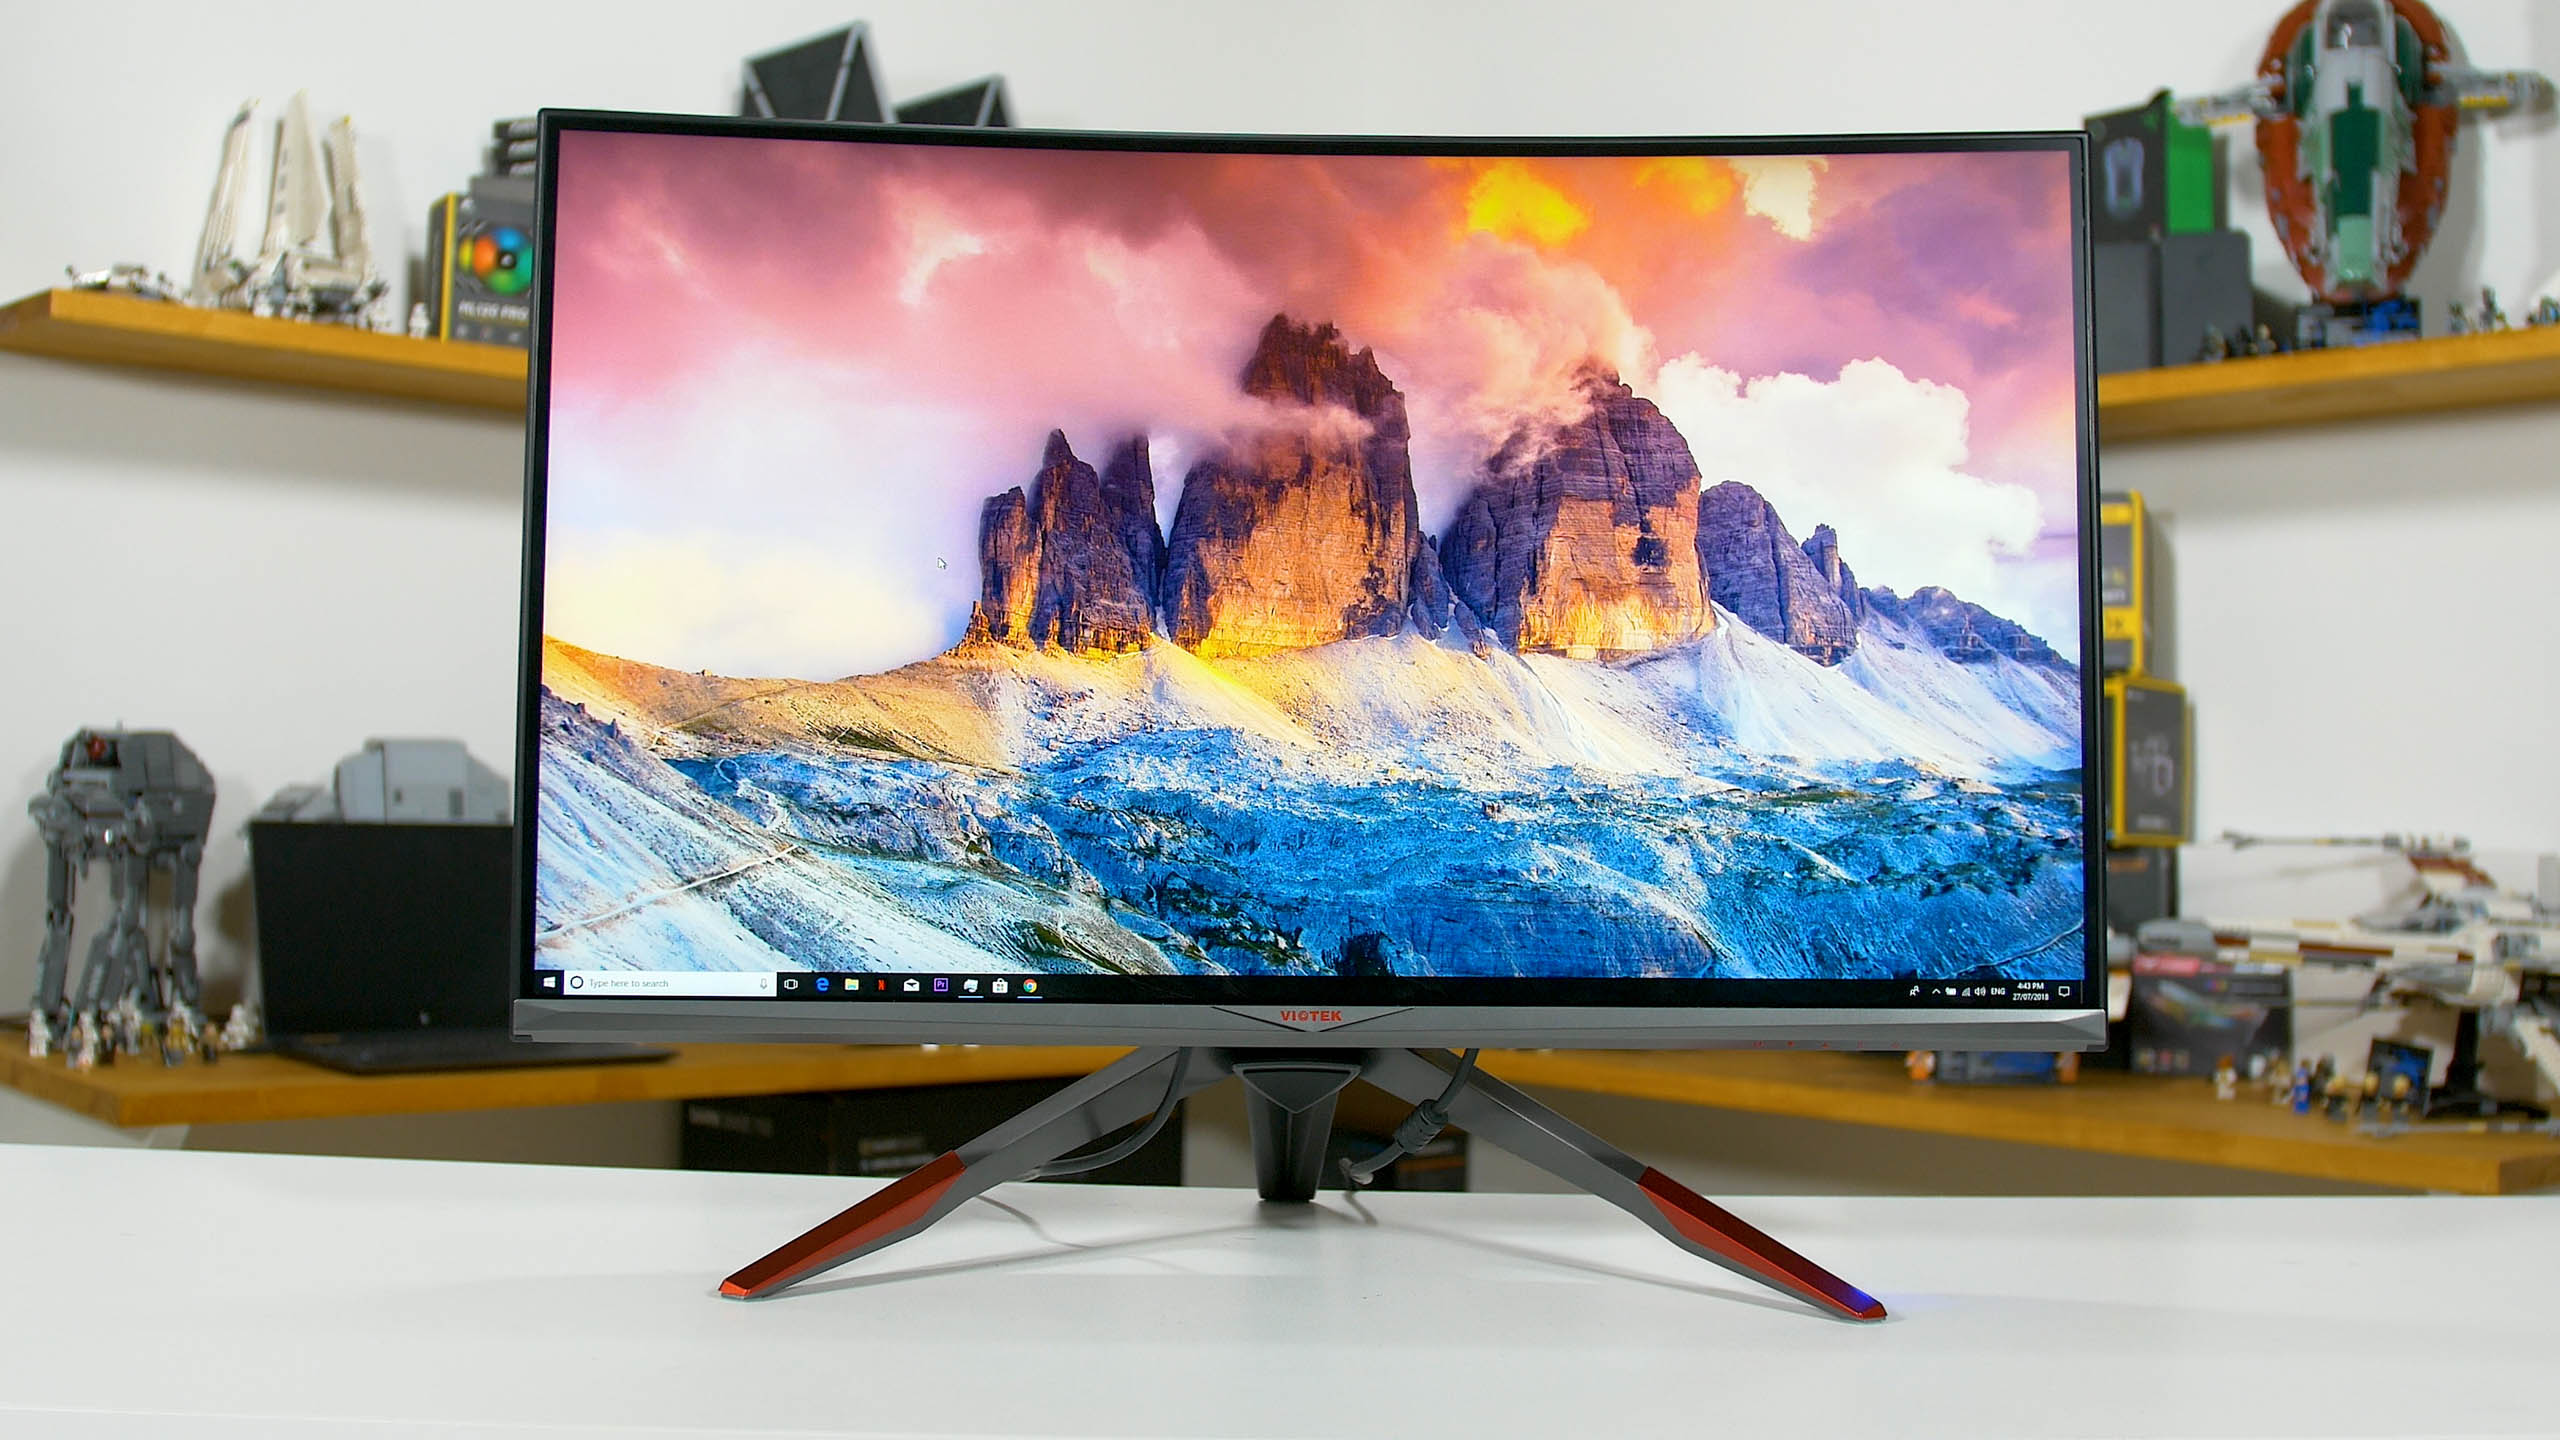 Tested: One of the Best-Selling (No Brand) Gaming Monitors